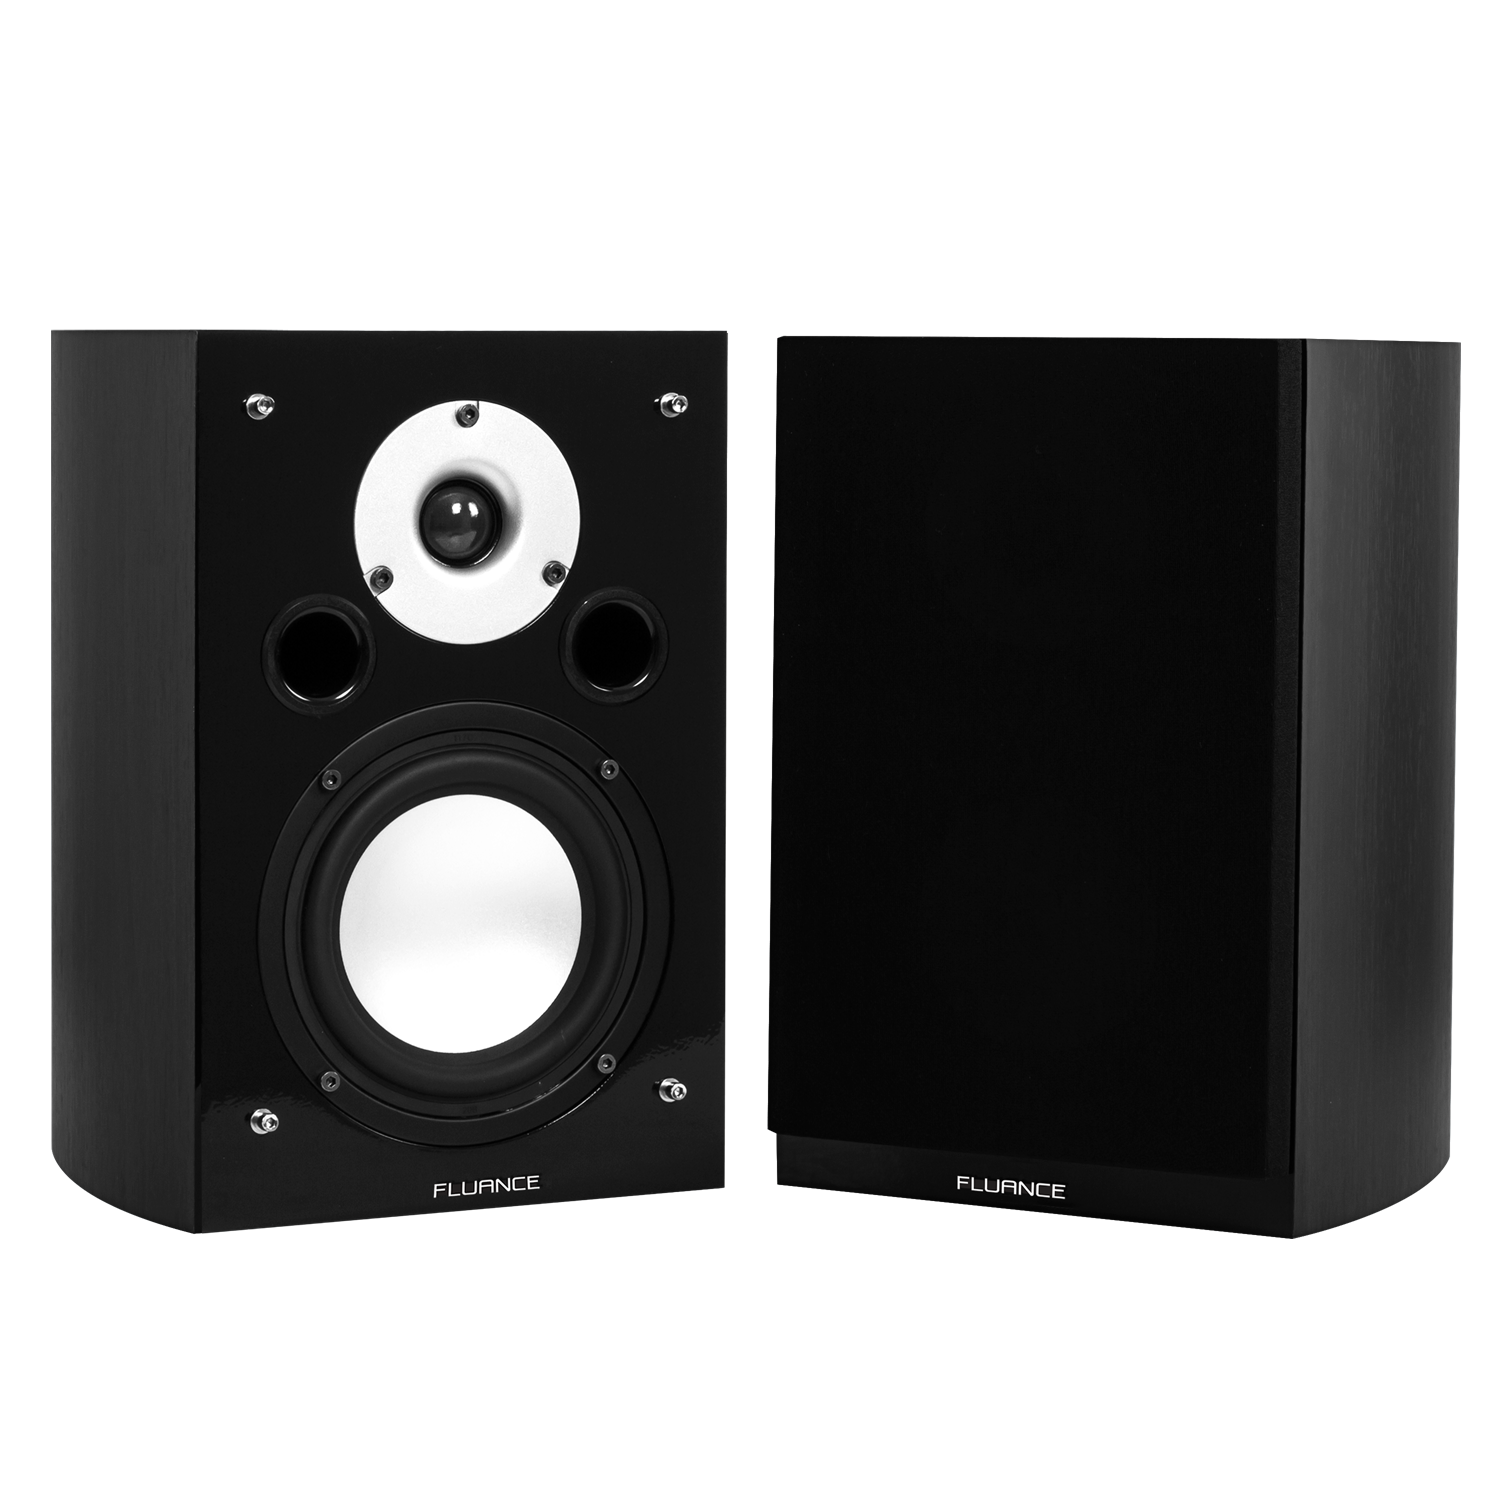 XL7S High Performance Two-way Bookshelf Surround Sound Speakers - Black Ash